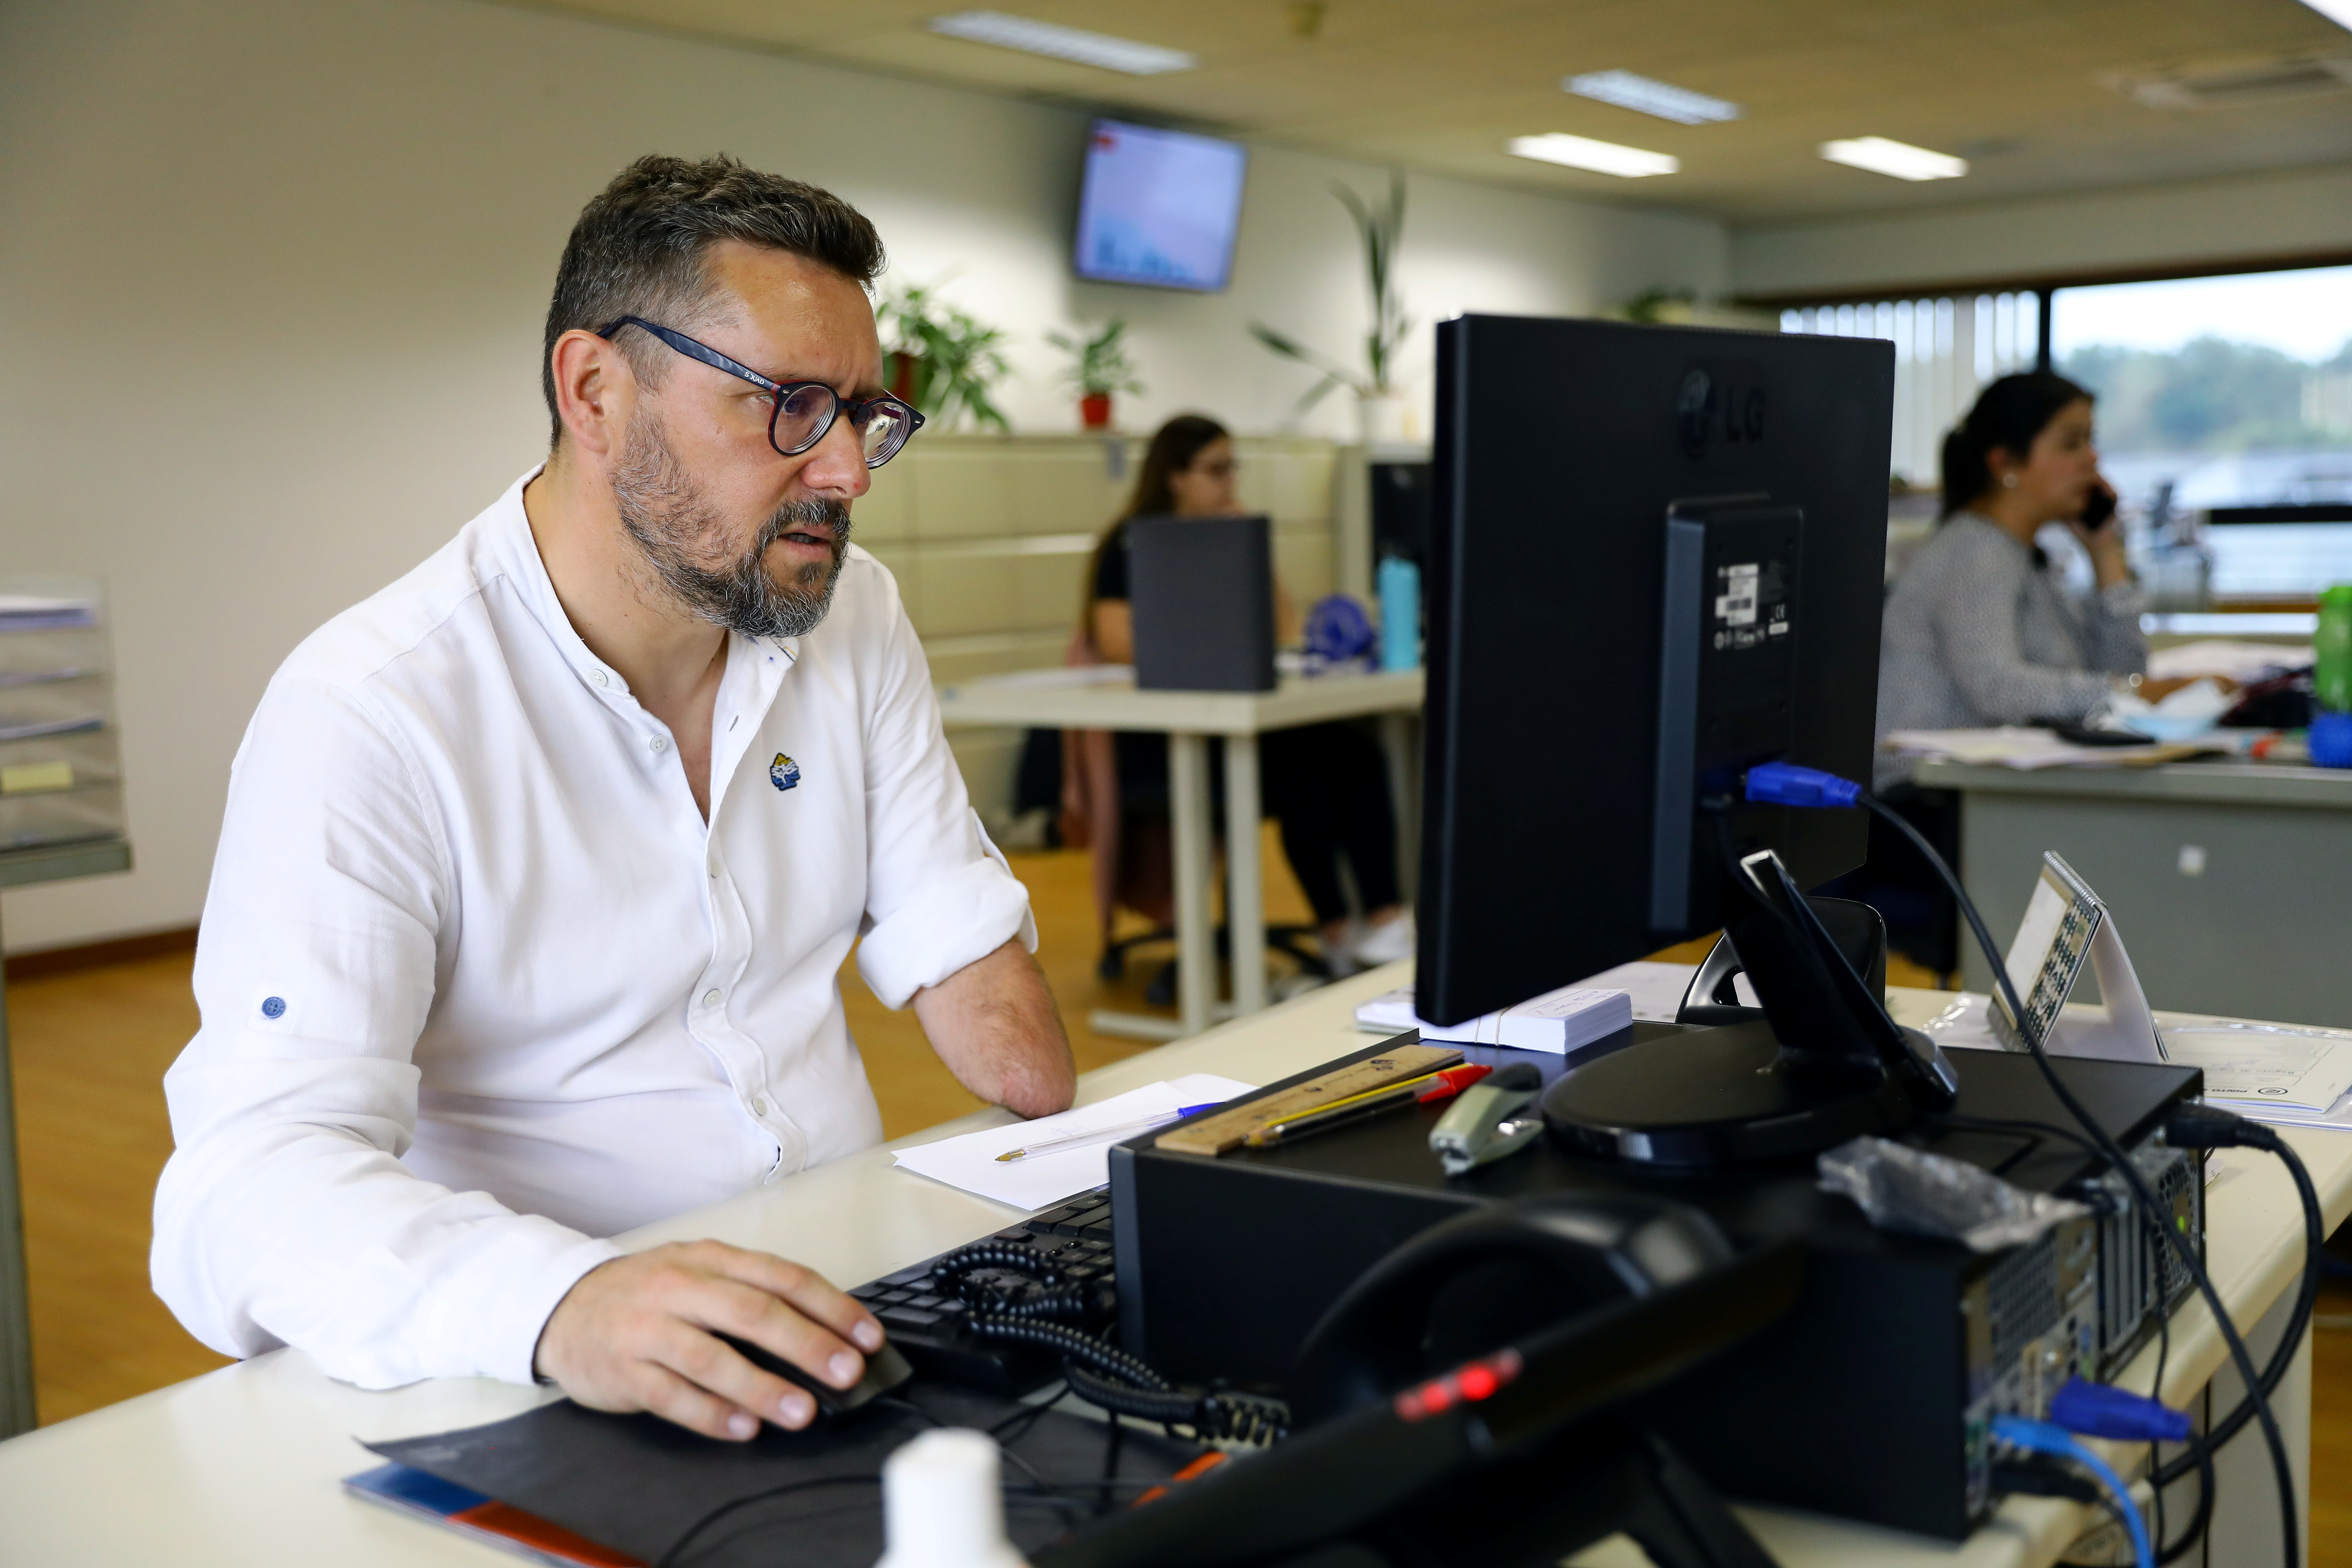 Rui Brito, a worker with a disability who lost his arm in a machinery accident more than 30 years ago, works at the office in Porto, Portugal, July 20, 2021. Picture taken July 20, 2021.  REUTERS/Violeta Santos Moura